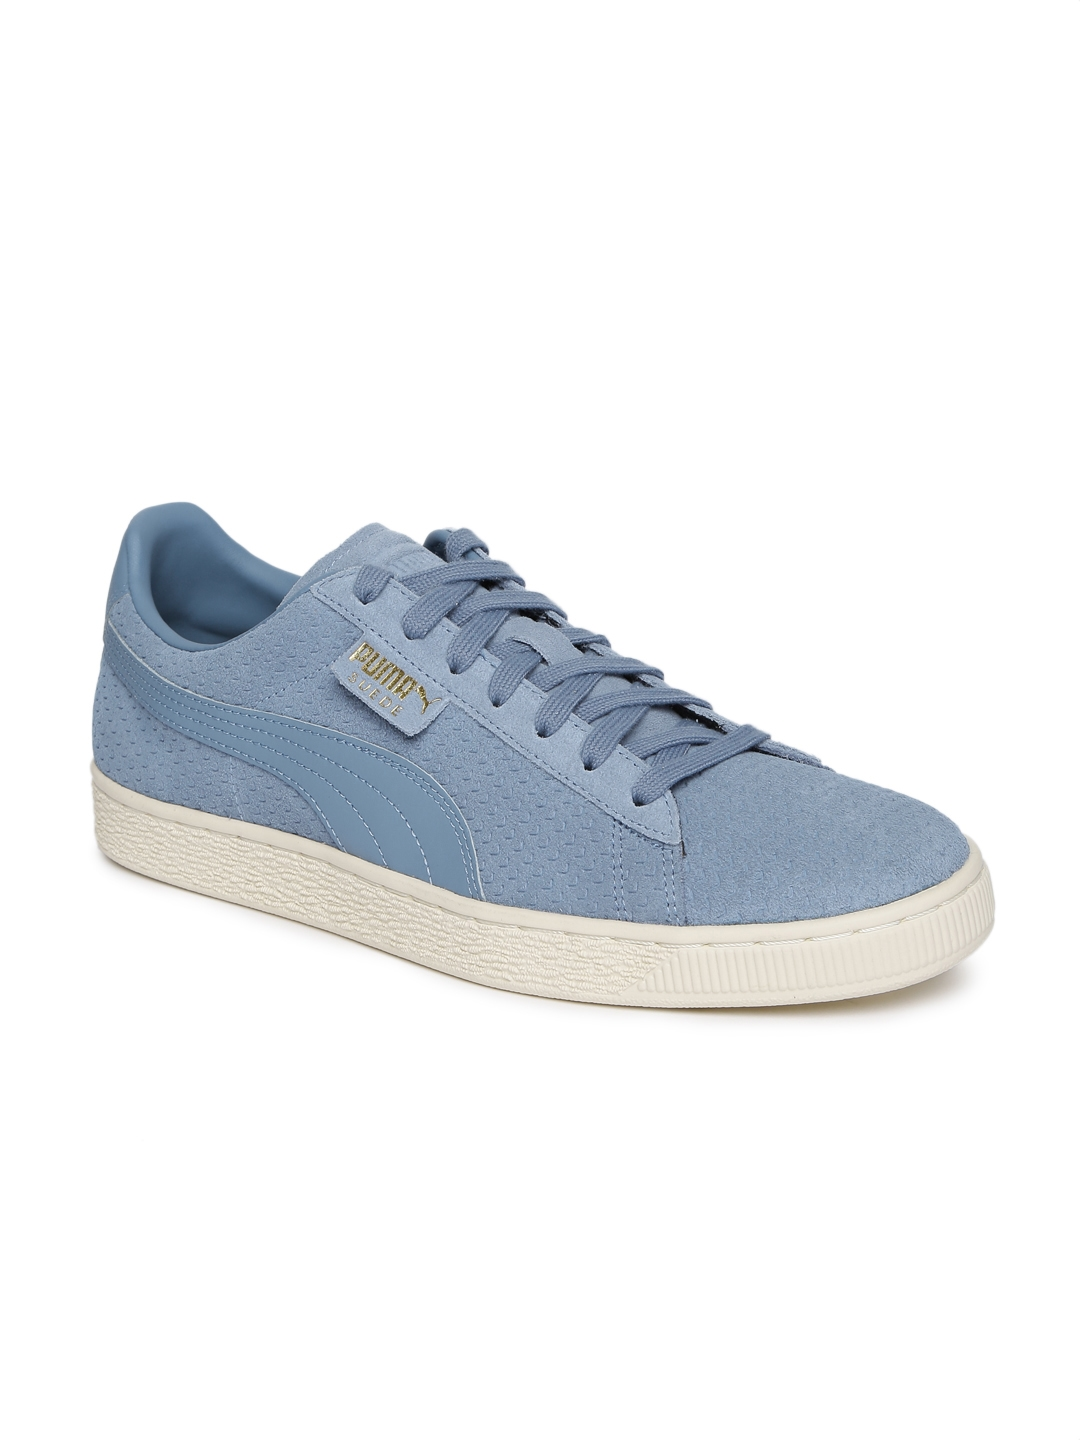 da299faa572 Buy Puma Men Blue Suede Classic Perforation Sneakers - Casual Shoes ...